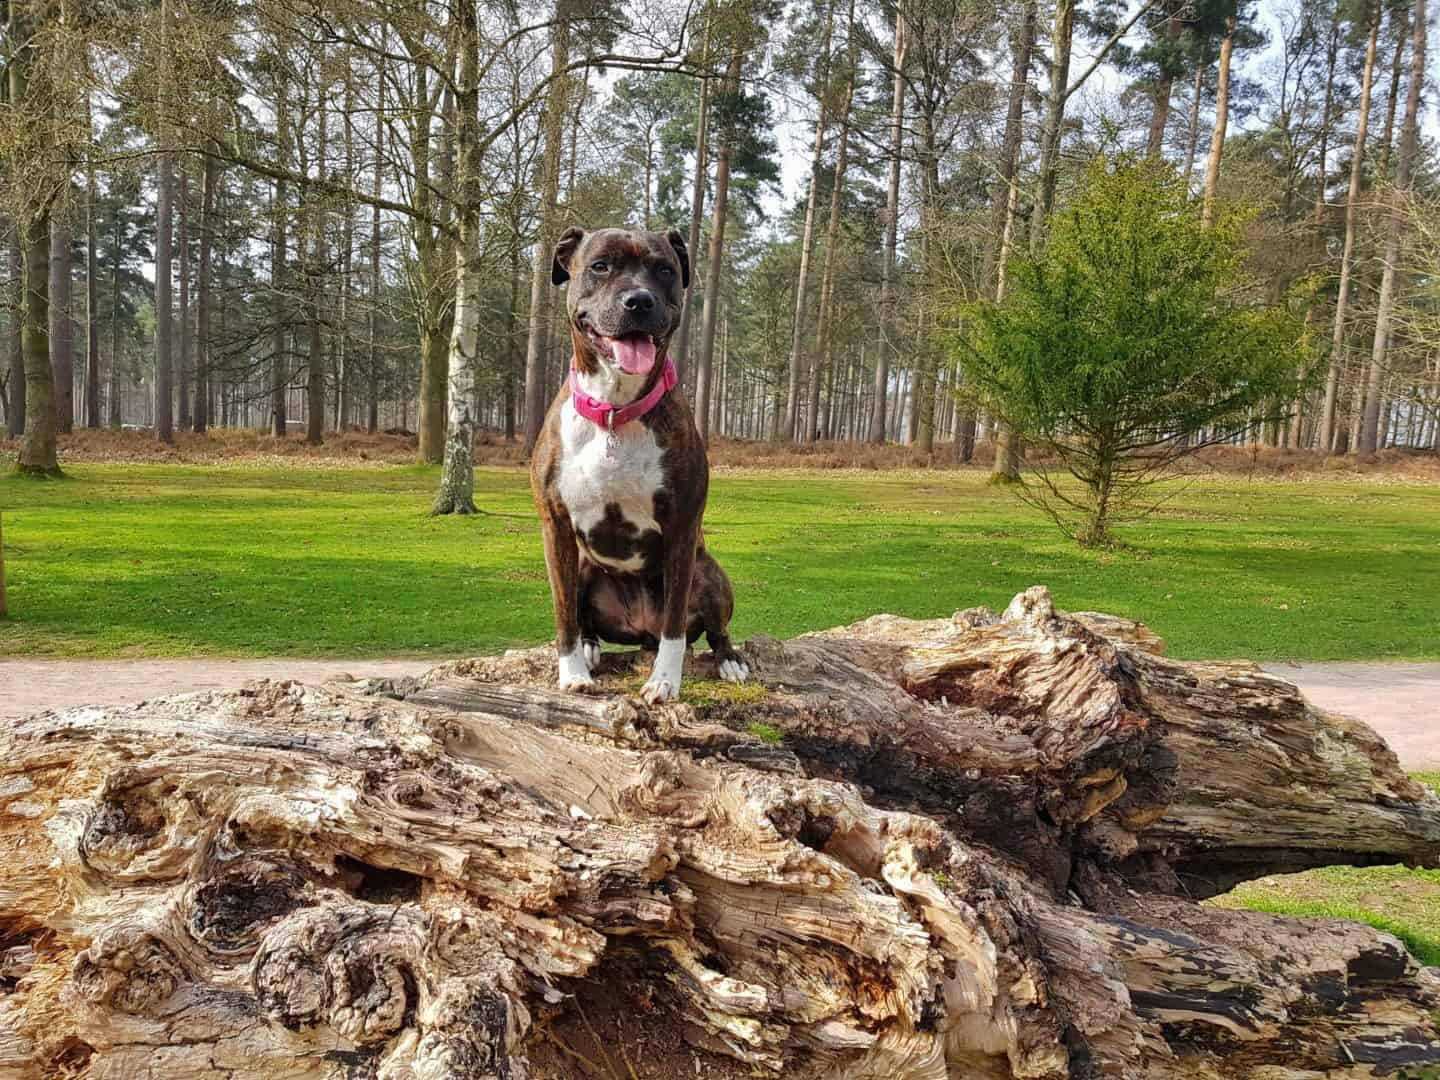 Dog friendly family day out at Cannock Chase Forest